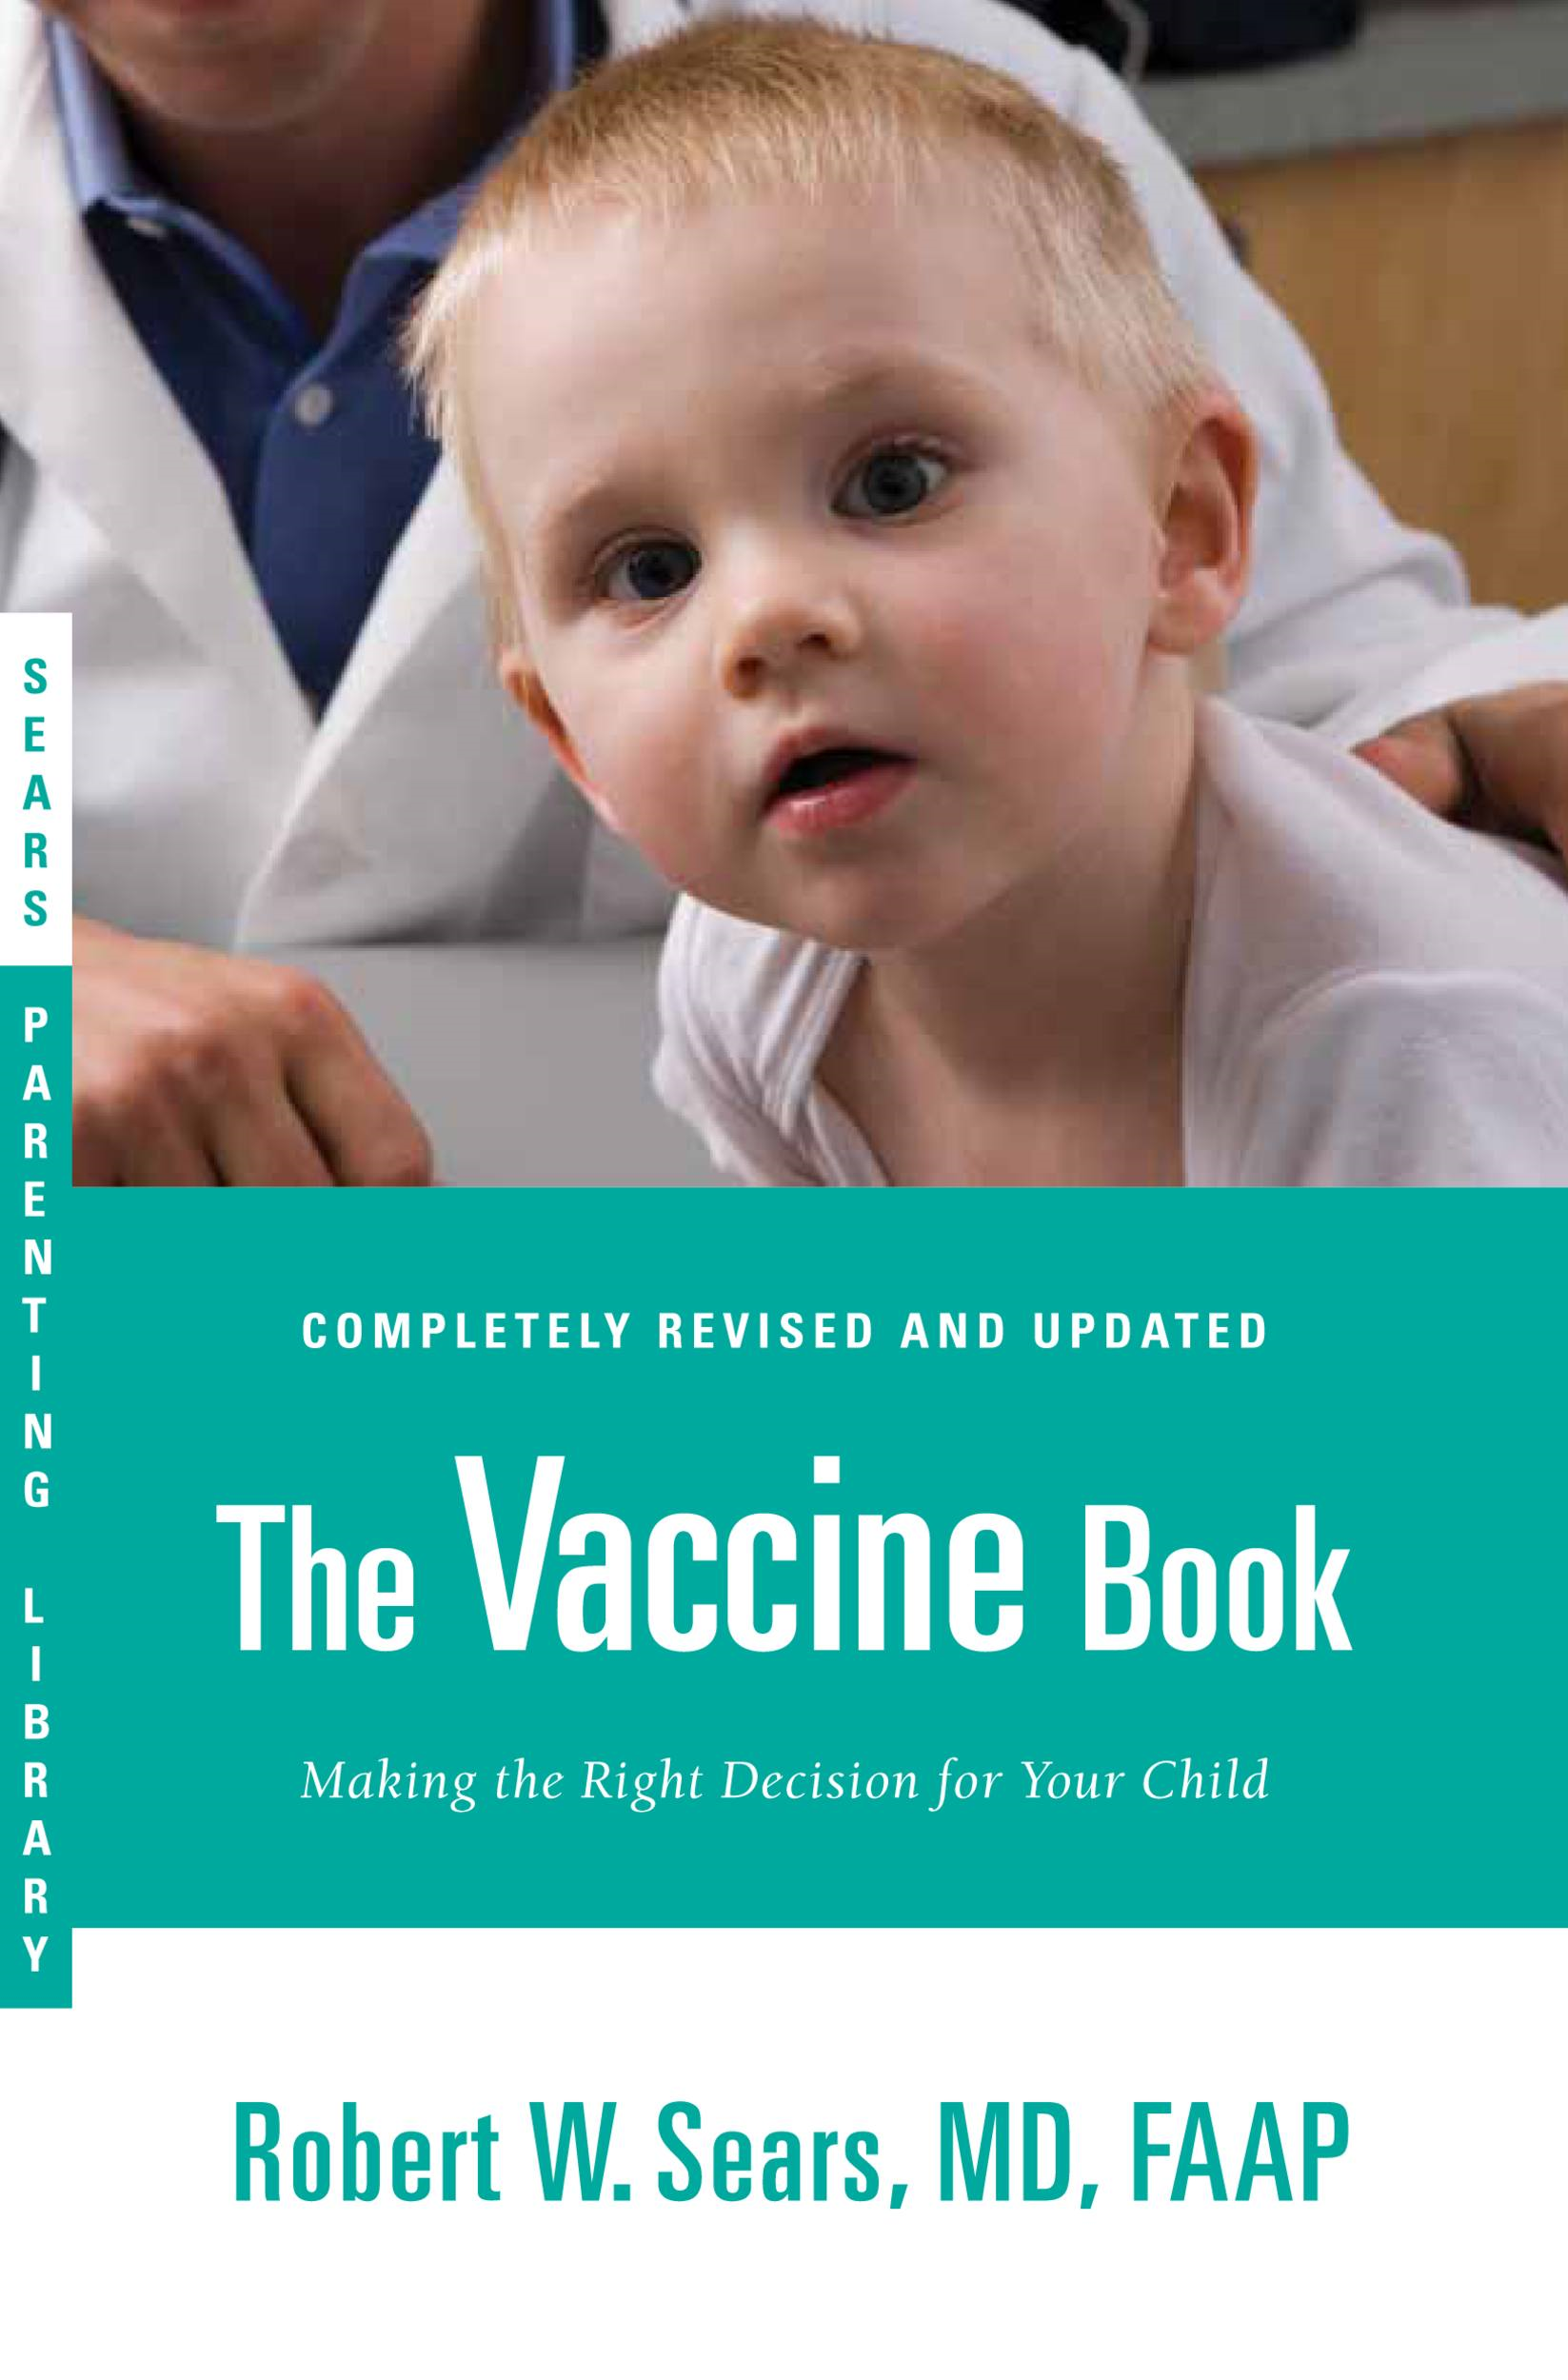 The Vaccine Book By: Robert W. Sears